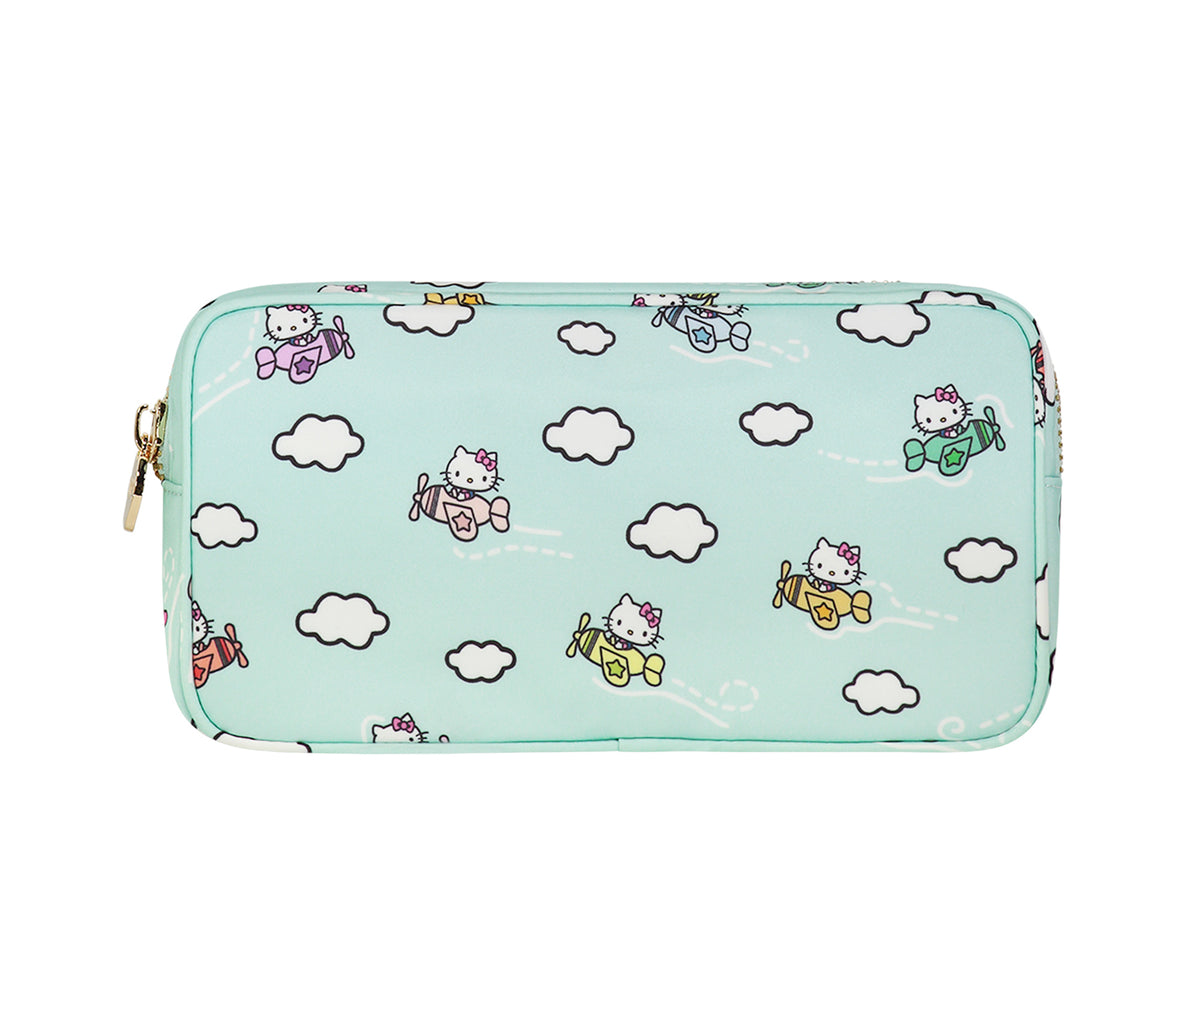 Stoney Clover Lane x Hello Kitty Airplanes Small Pouch